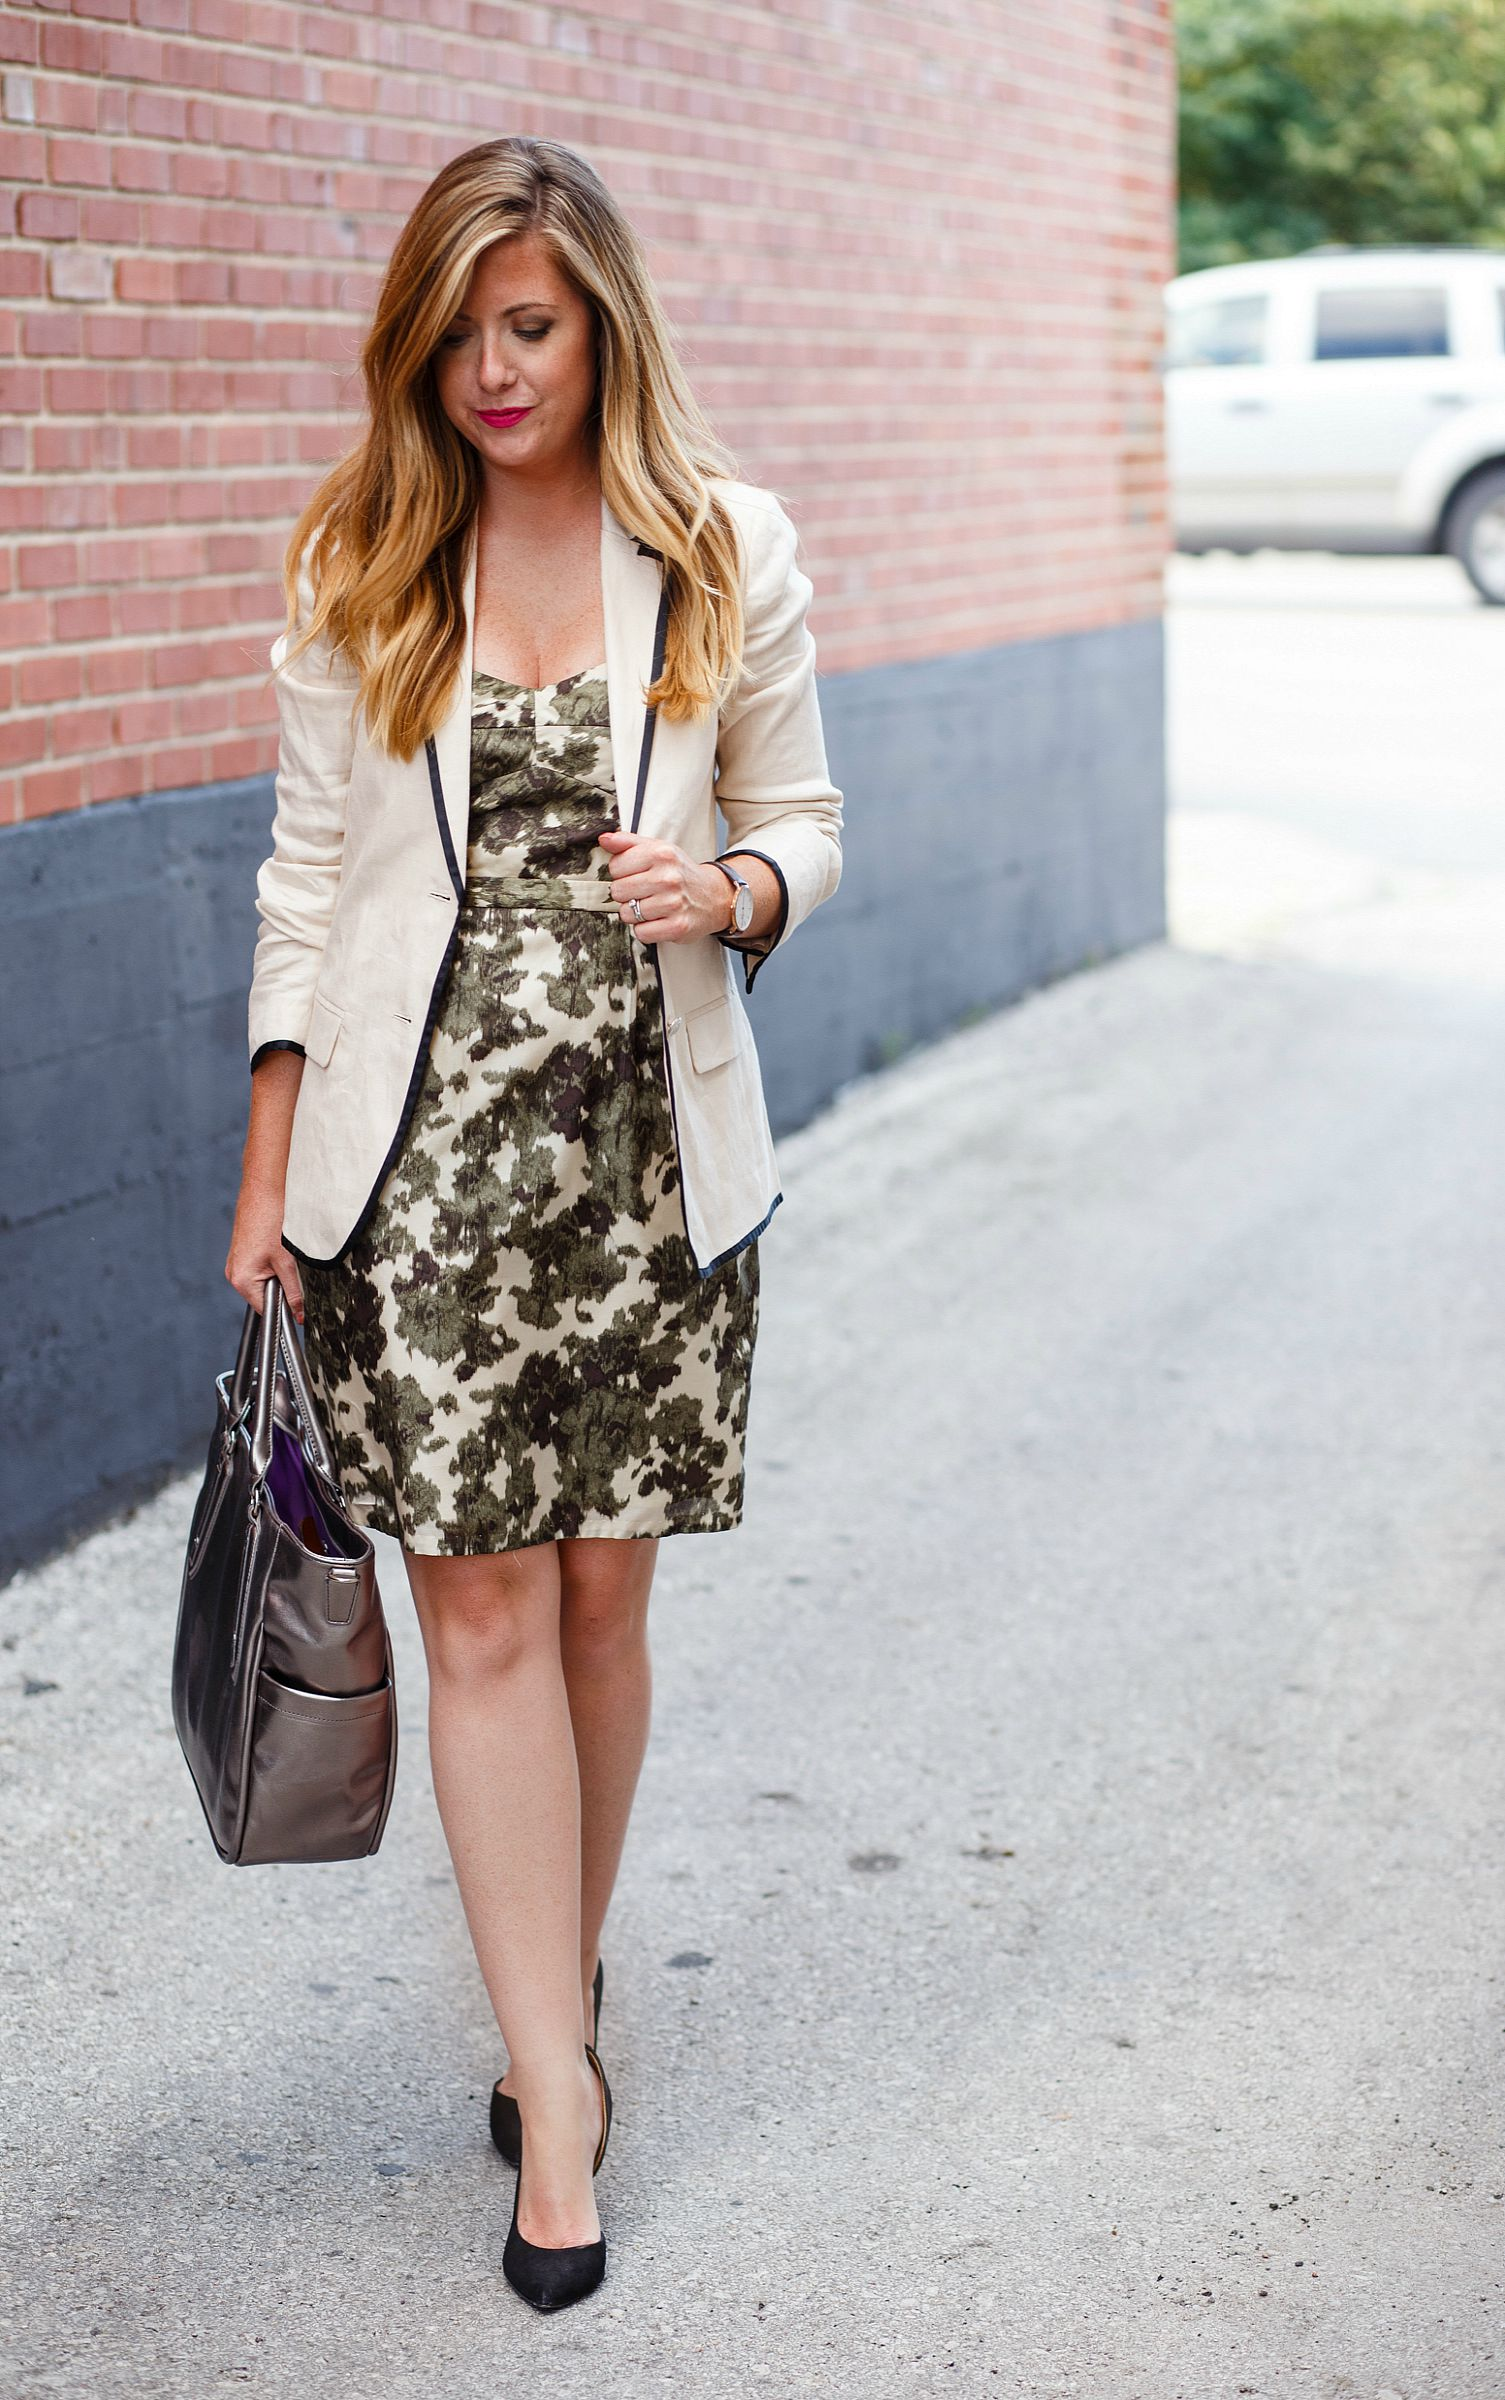 Blazer with dress and black heels for the work day. Then add accessories and take the blazer off for a night out on Sophisticaited.com